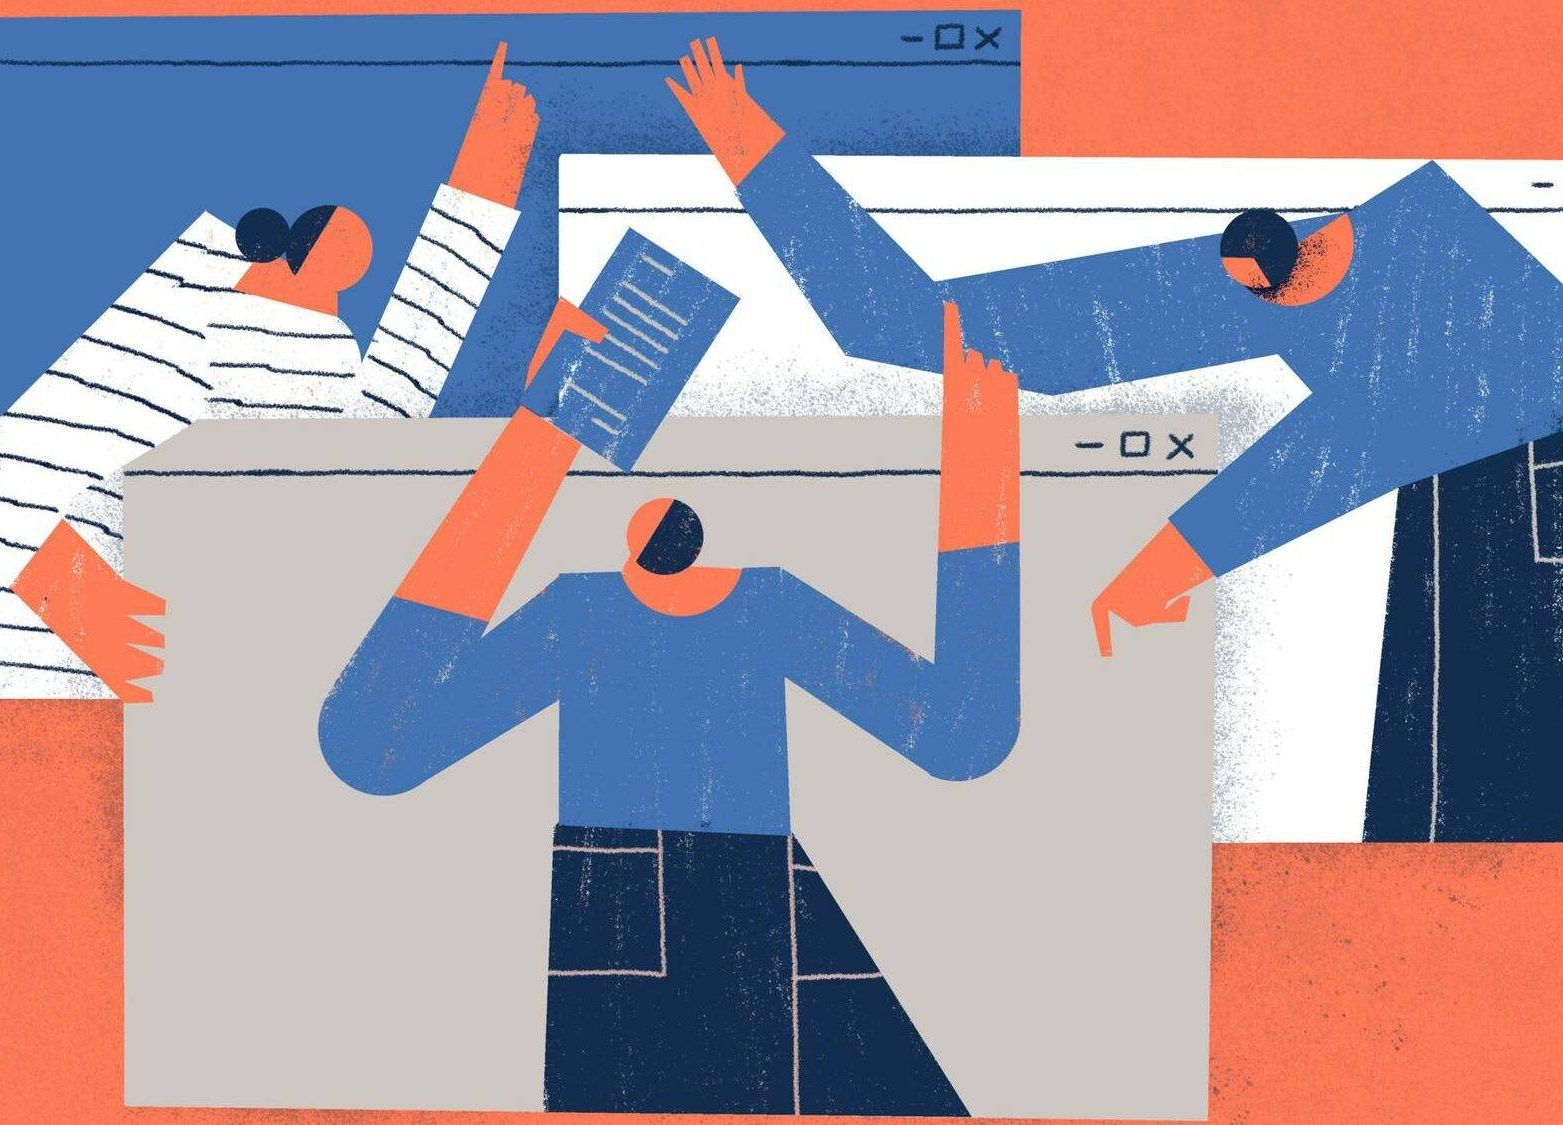 Illustration of remote workers interacting with each other virtually over video calls